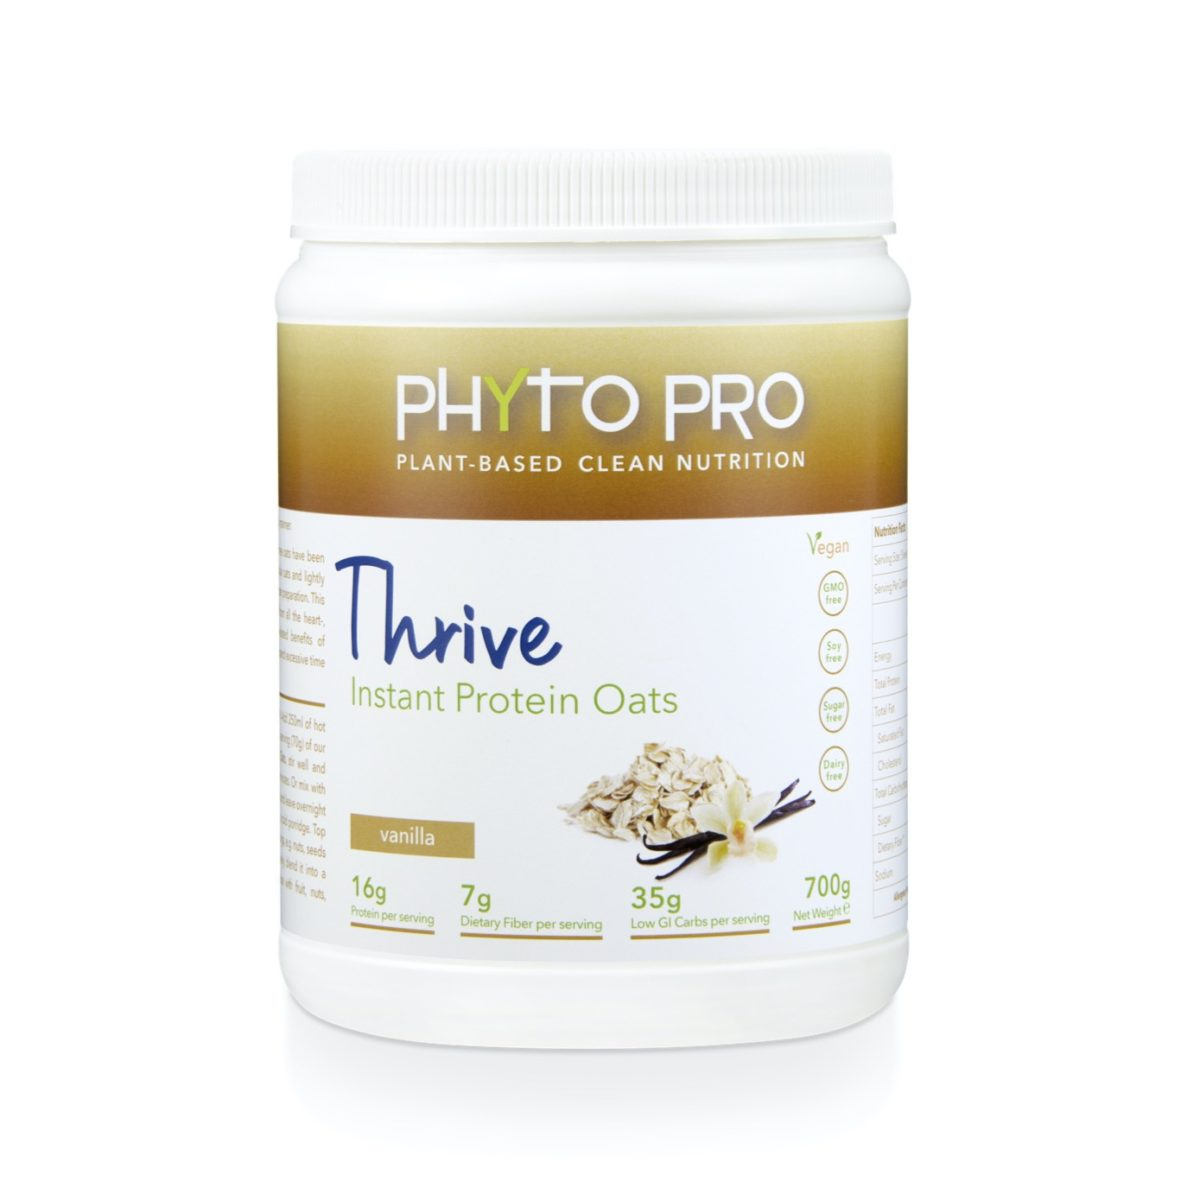 PP3248 Phyto Pro Thrive Instant Protein Oats Vanilla 700g